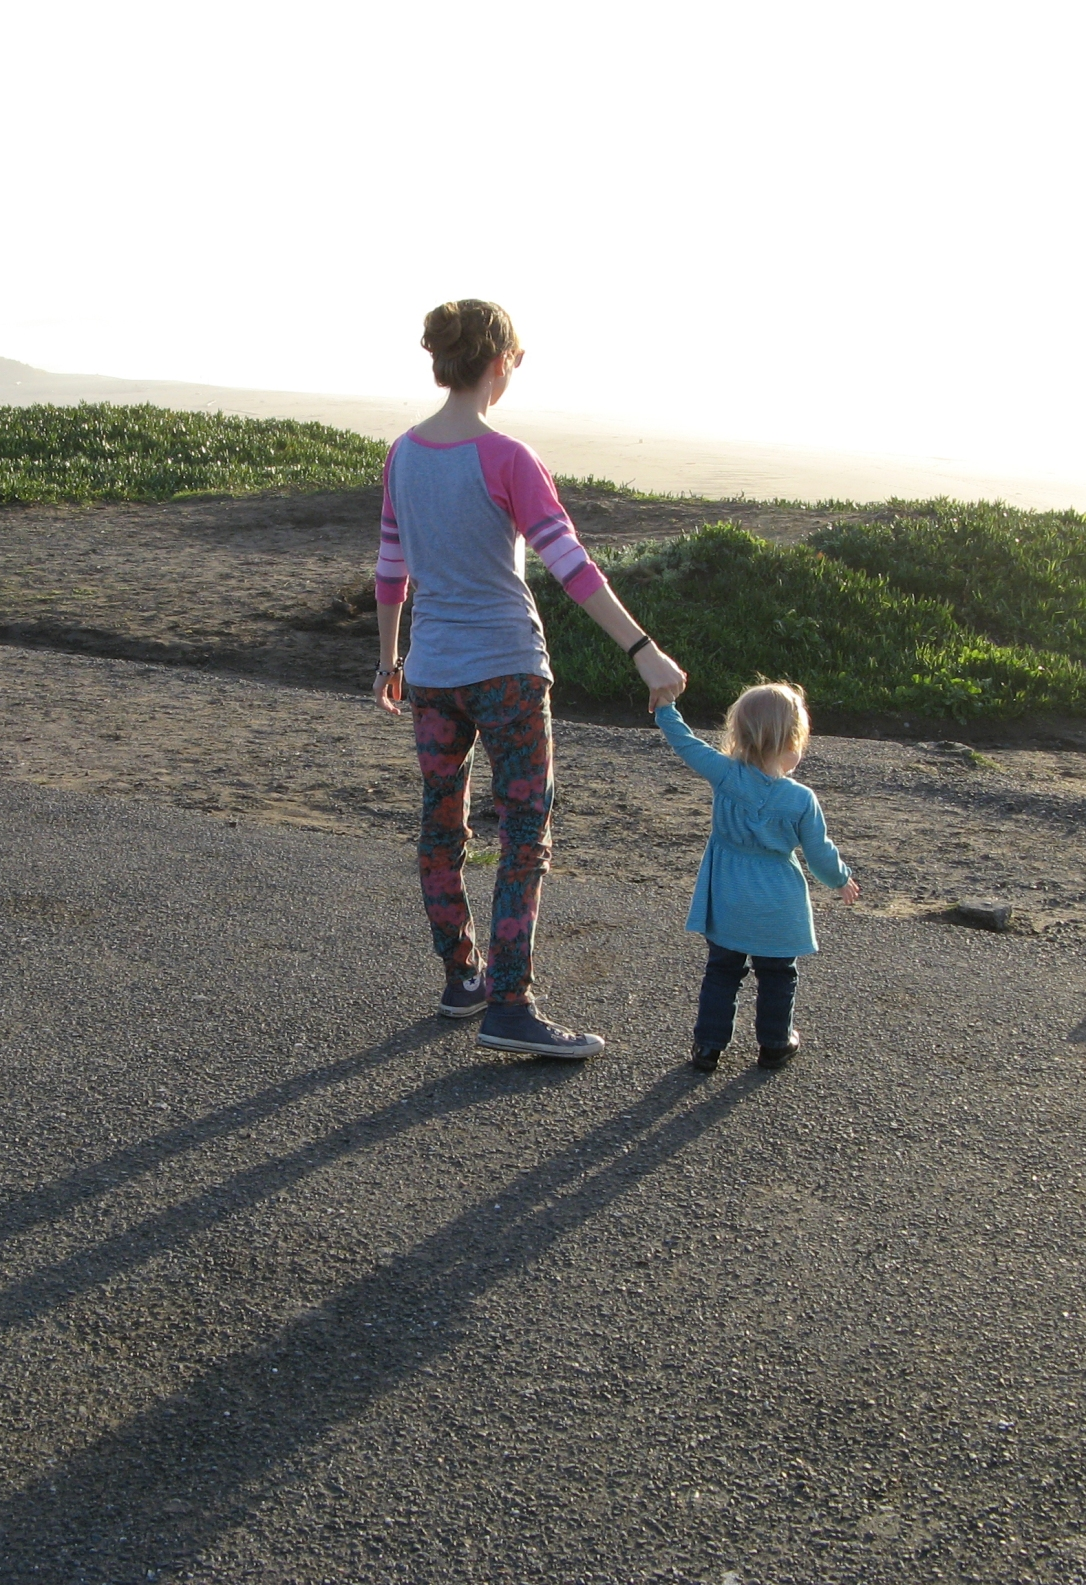 January 2013 - Aveline and I at Bodega Bay in California